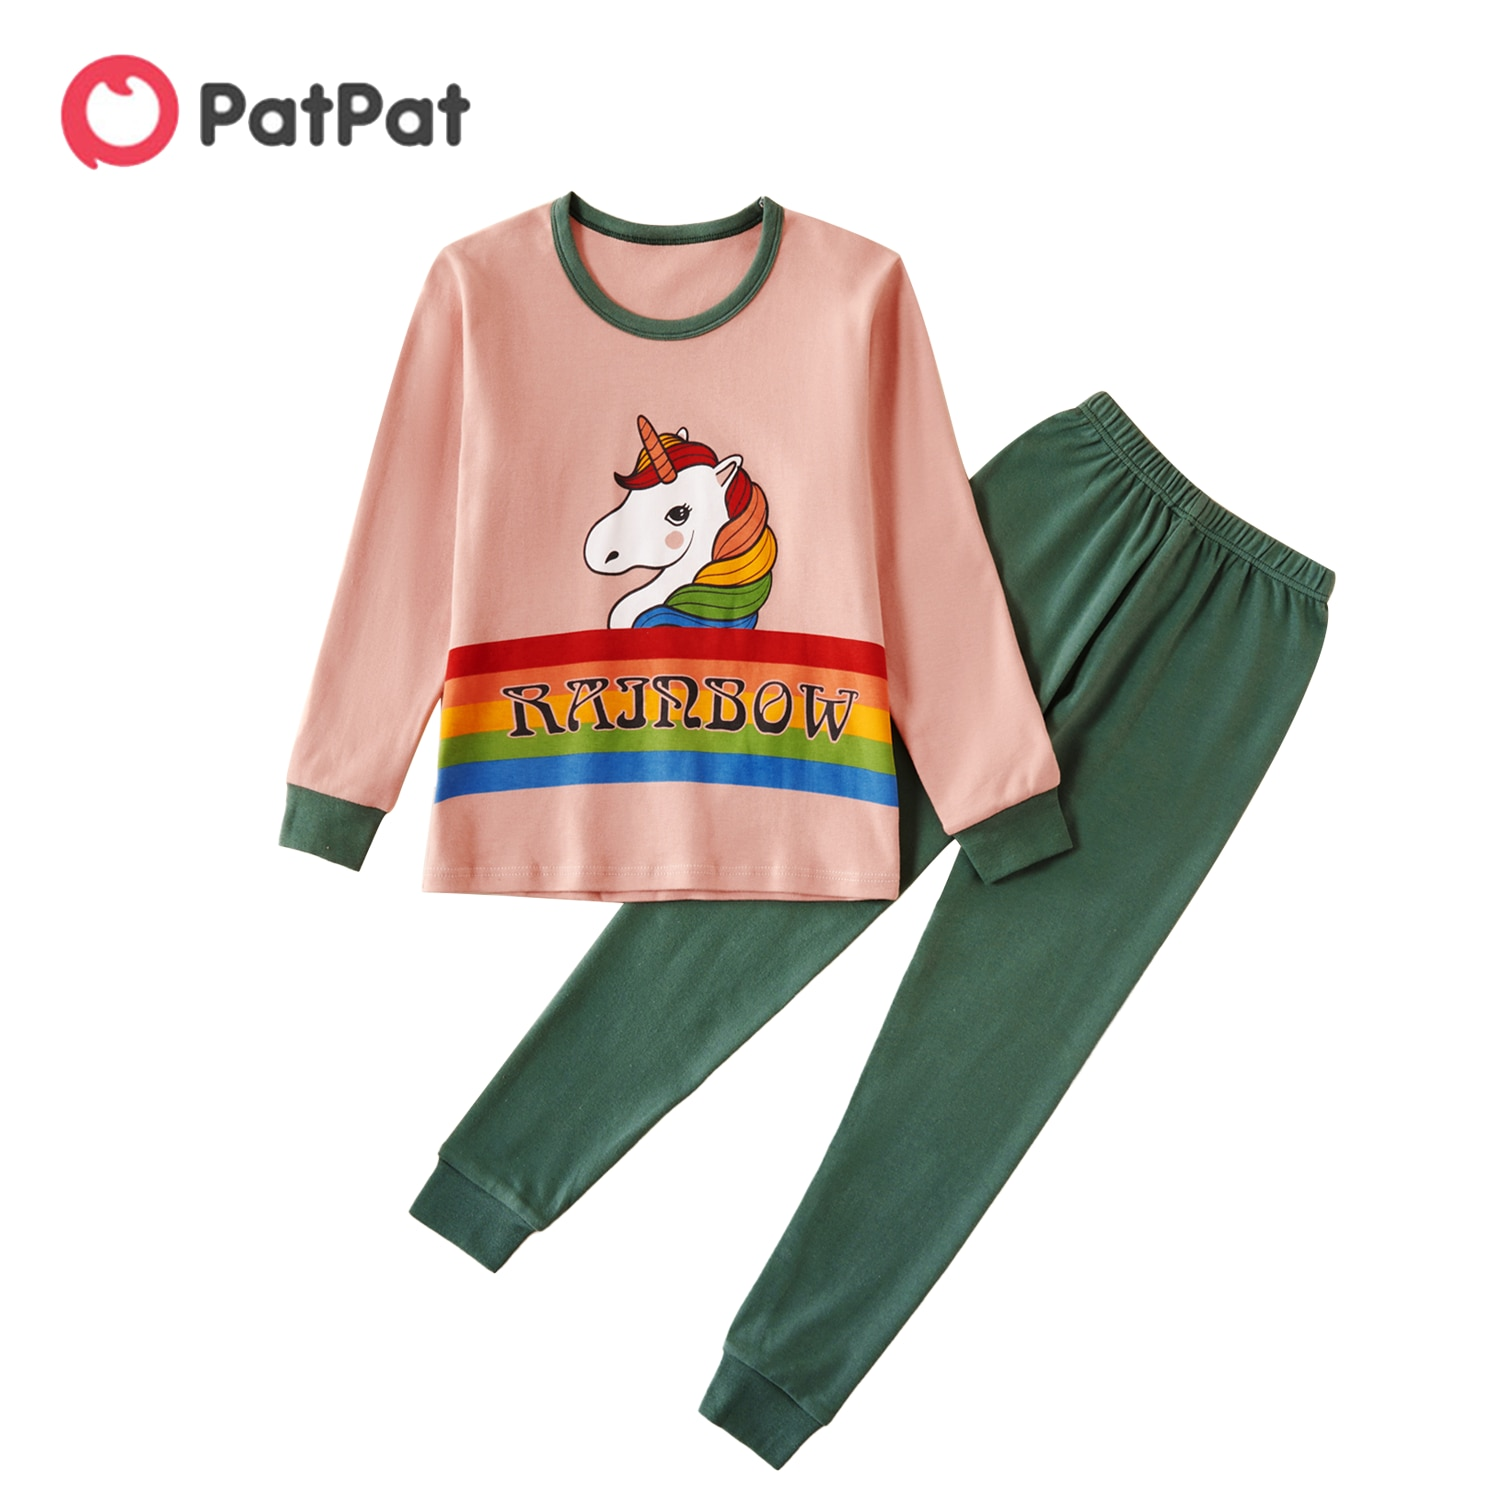 PatPat 2021 New Arrival Toddler Boy Street Style Top and Shorts Sets